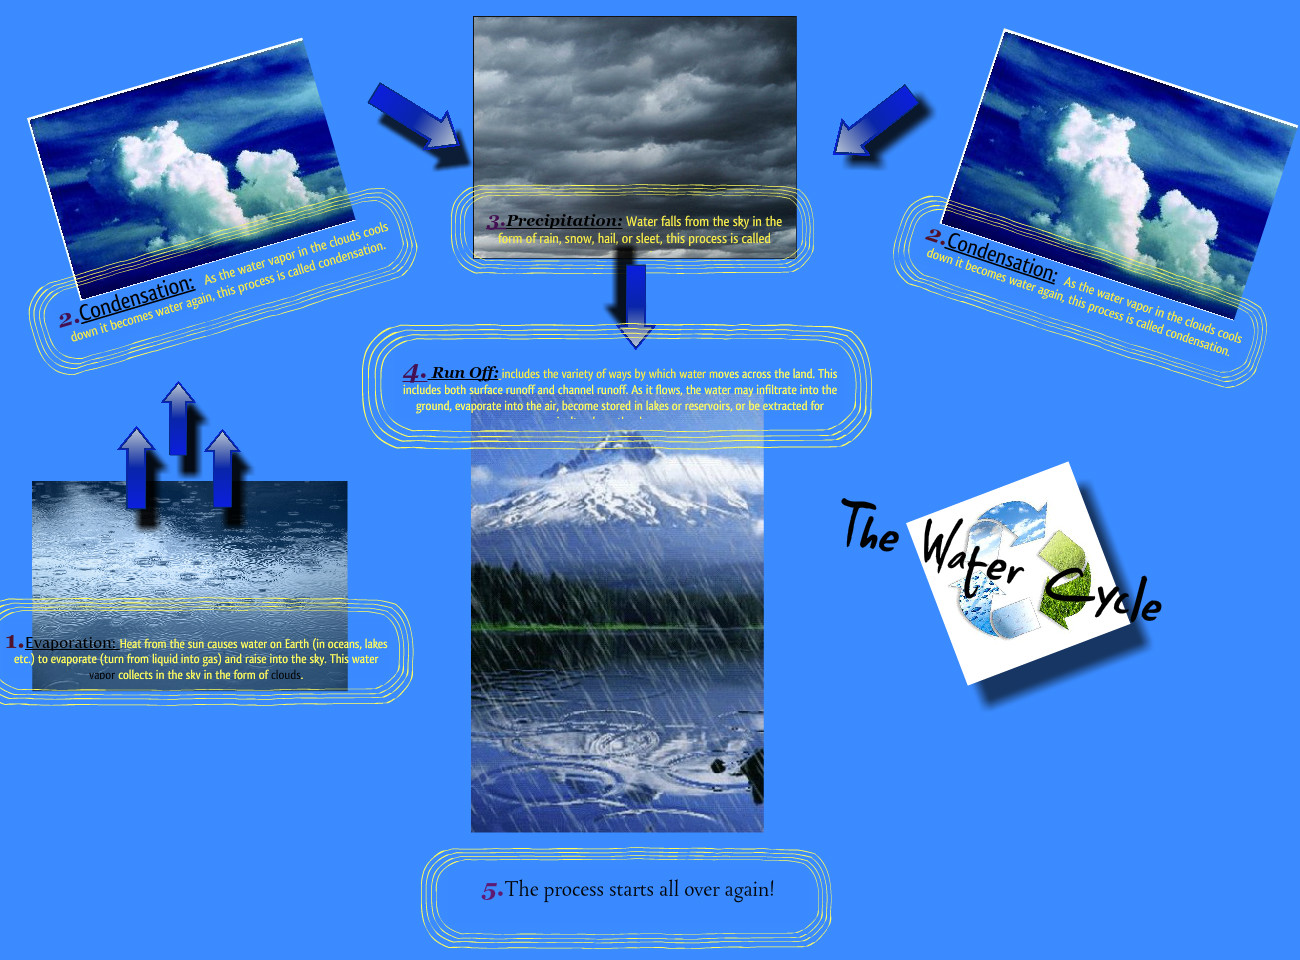 The Water Cycle: text, images, music, video | Glogster EDU